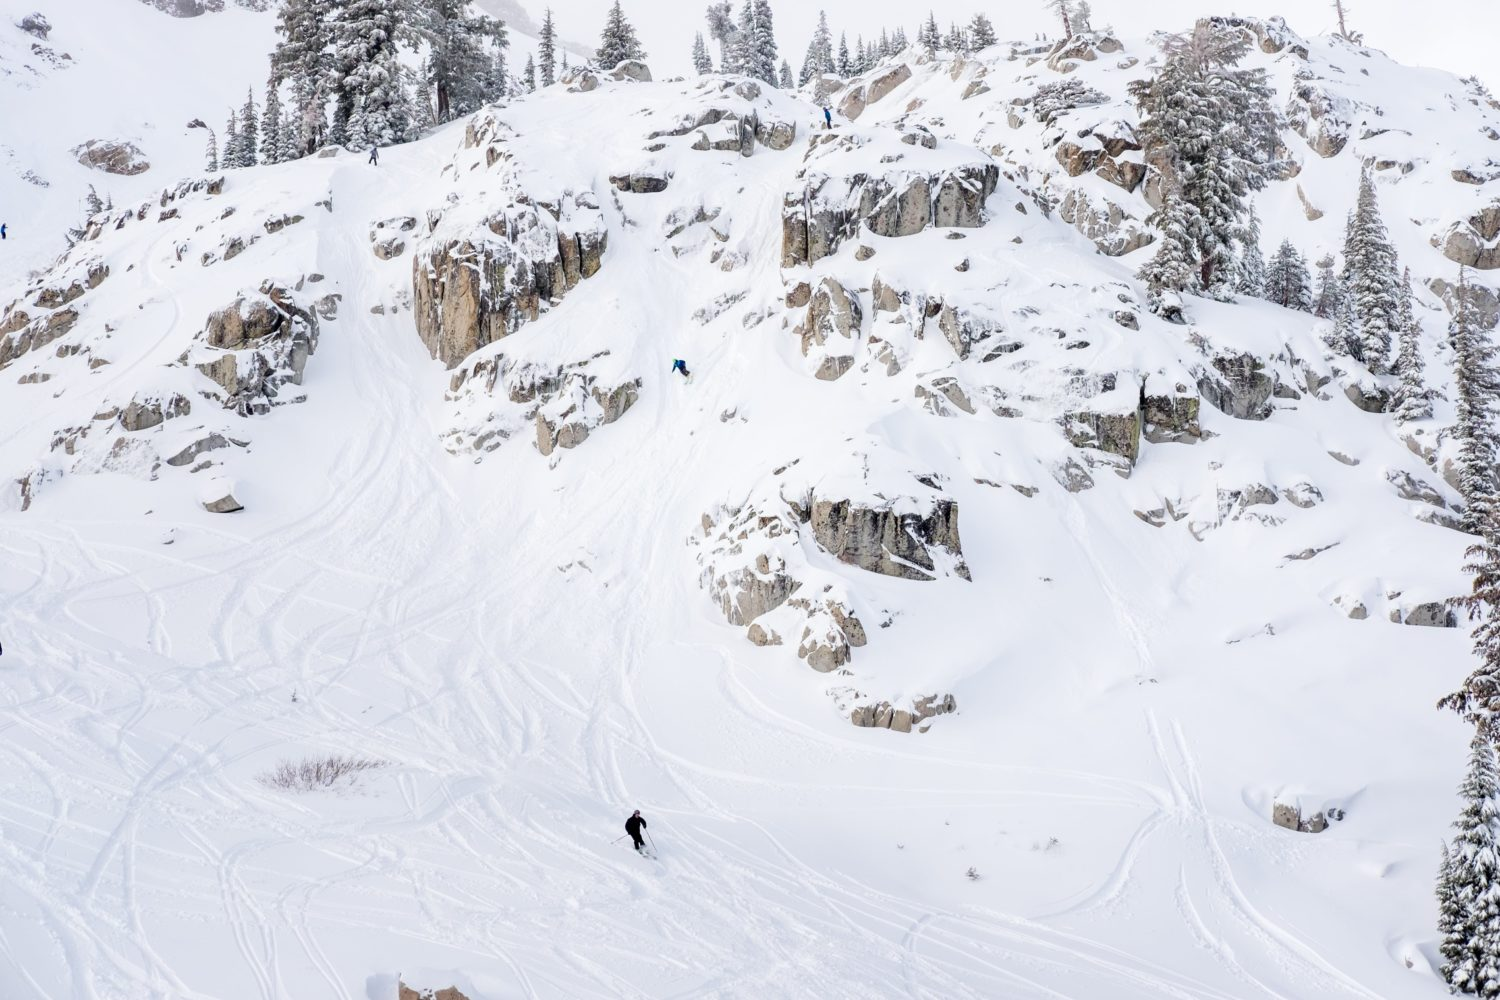 Shirley Chutes on a pow day